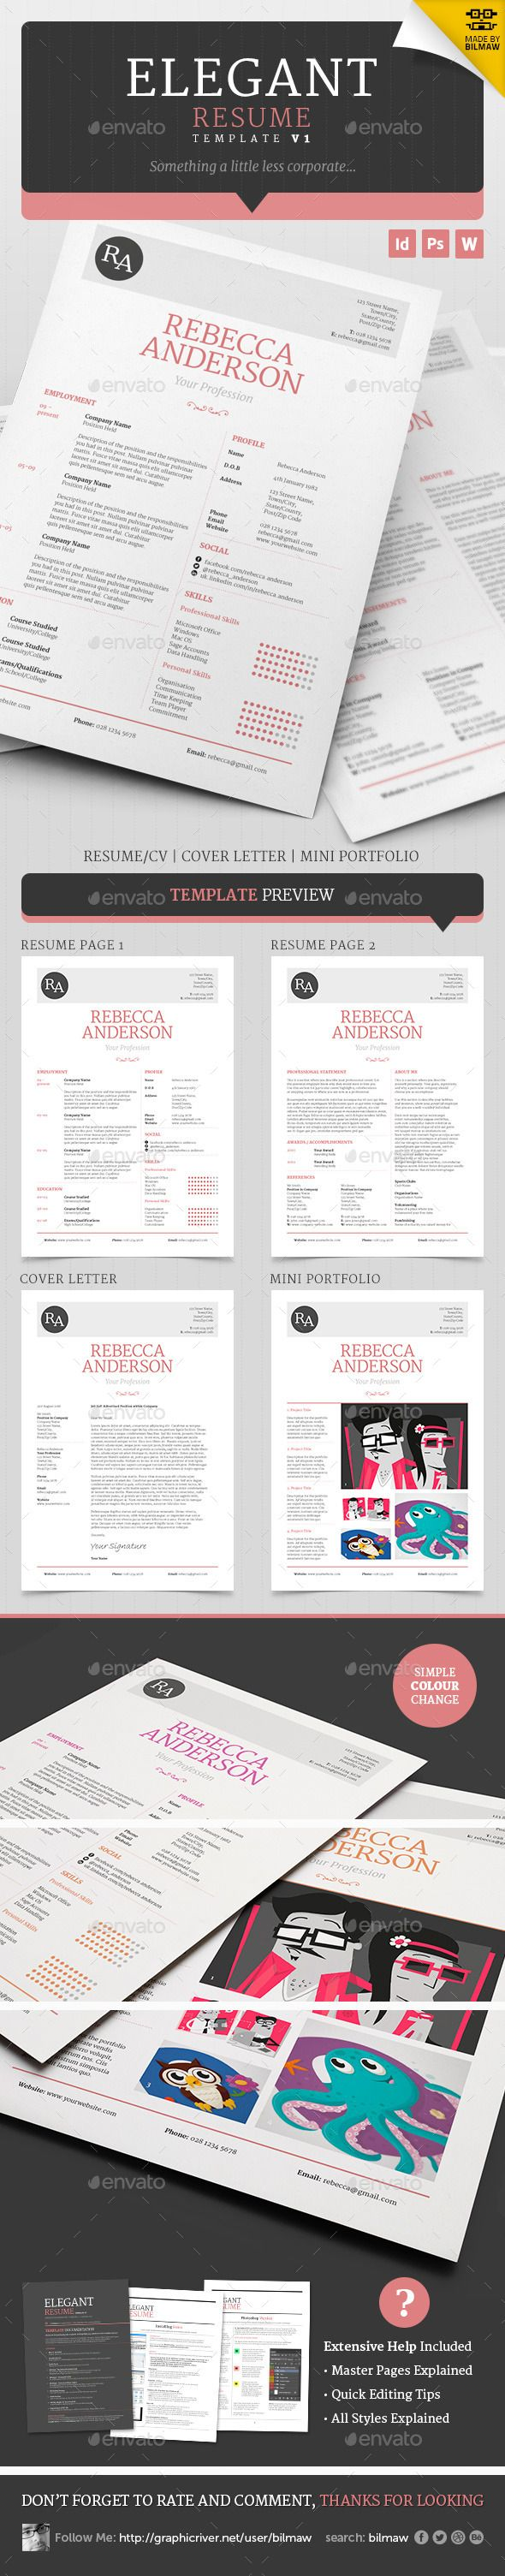 Elegant Resume/CV V1 - Resumes Stationery / Cover letter / Template. A beautiful, clean and well organised resume/cv template with a lighter, more elegant theme than most resume templates. Ideally designed for those who are looking for something a little less masculine but can easy be edited to suit any application with a quick font and colour change.